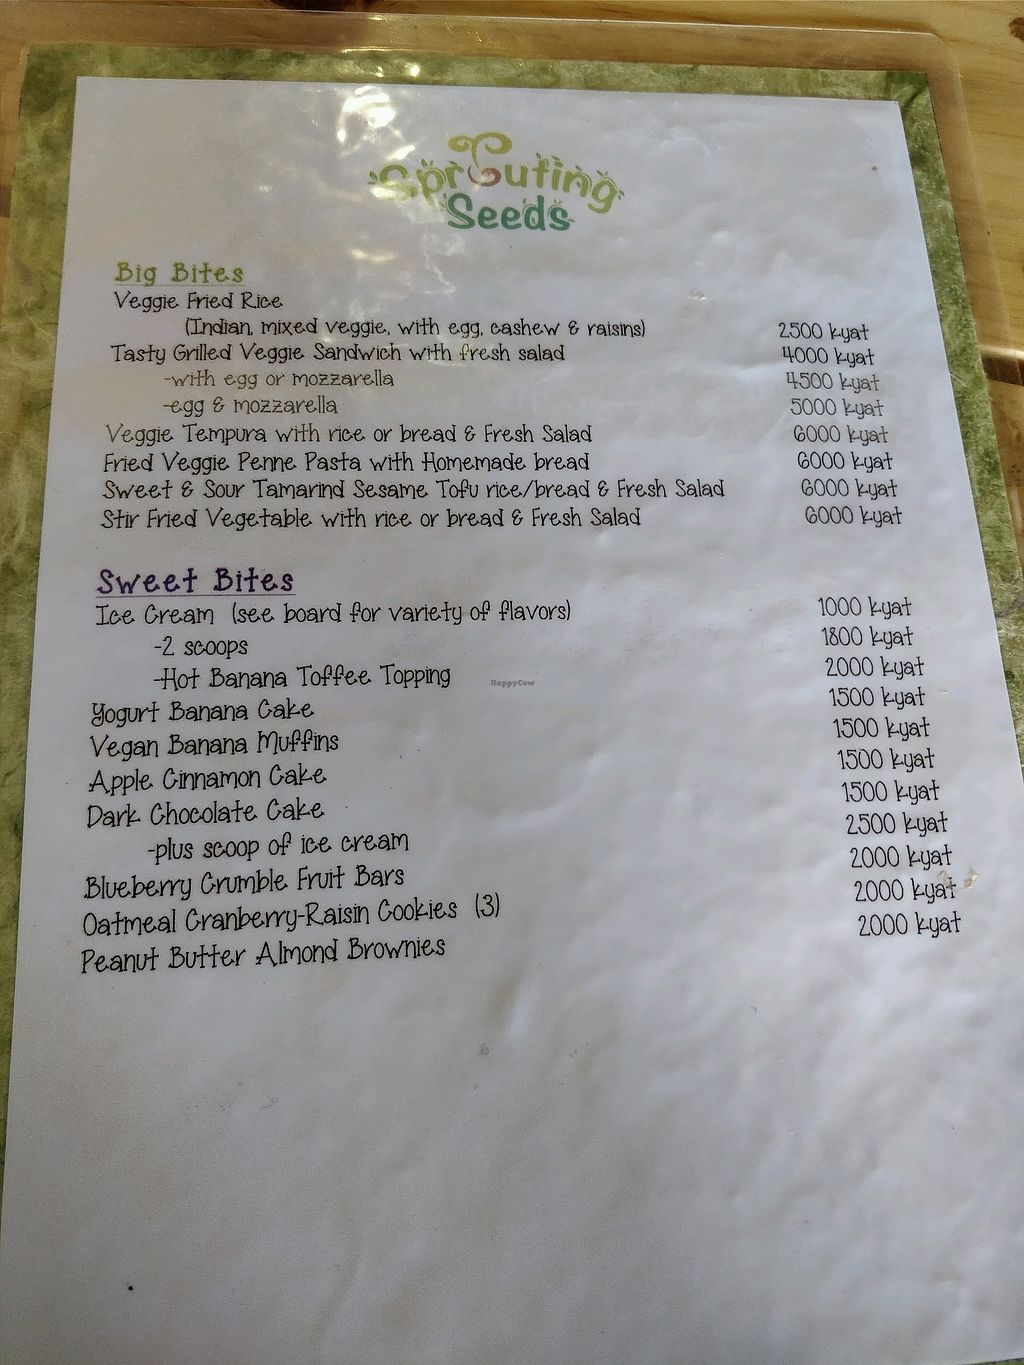 "Photo of Sprouting Seeds Cafe & Bakery  by <a href=""/members/profile/Erikoo"">Erikoo</a> <br/>food menu 1 <br/> February 11, 2018  - <a href='/contact/abuse/image/88133/357907'>Report</a>"